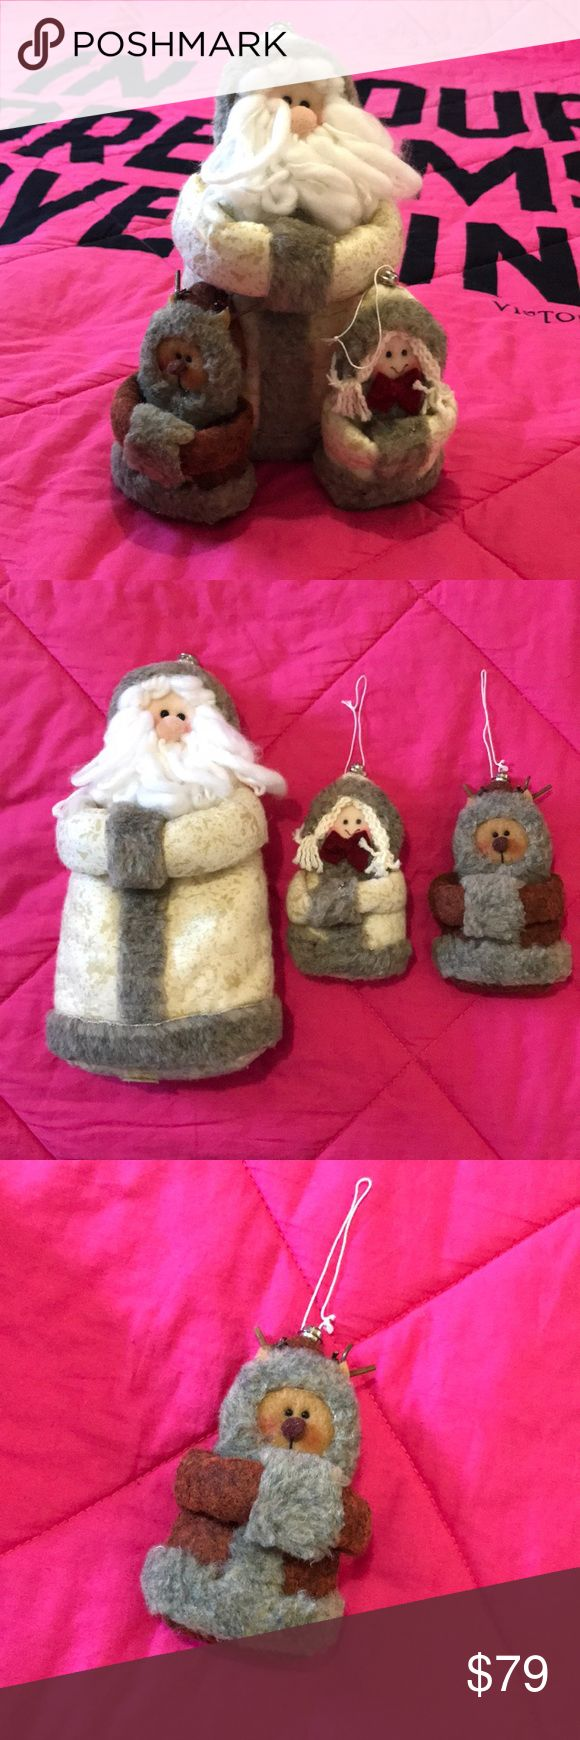 """🎄 Kremmerhuset Decor 🎄 New with tags. A cute set, for the collection. Santa measures 10"""" tall. & the other 2 measure 5"""" tall. All have heavy weighted bean bags in bottoms. Cute, & ready for next year!!! 🎄🎄🎄 🖤 ALWAYS OPEN TO OFFERS 🖤 Accessories"""